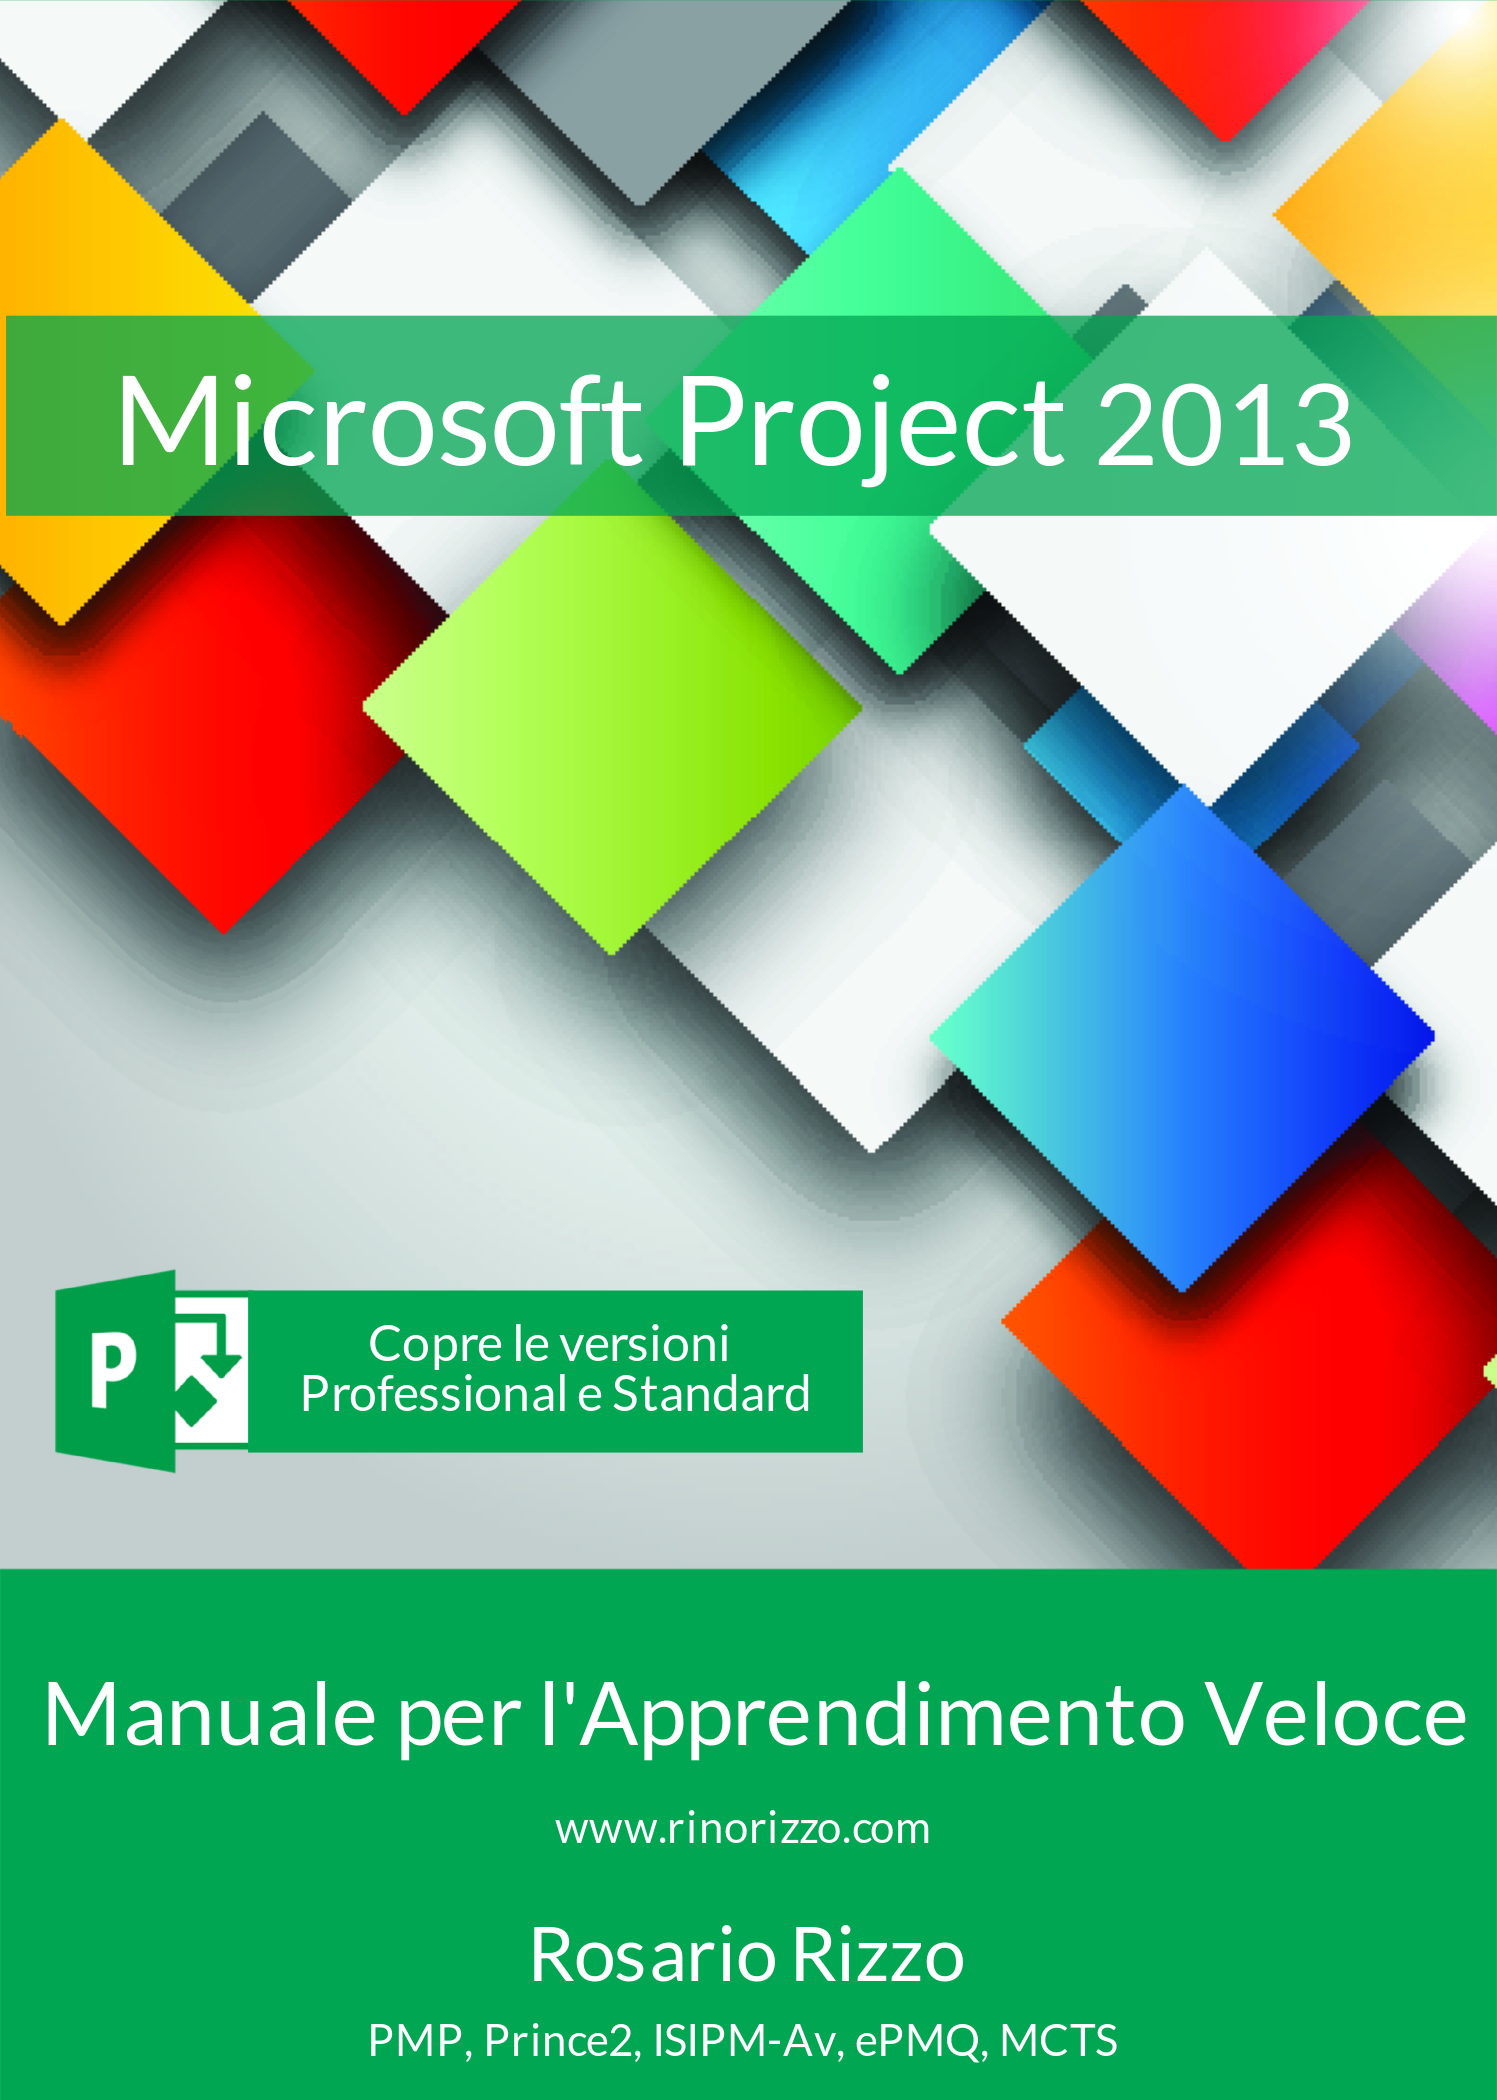 Manuale Microsoft Project 2013